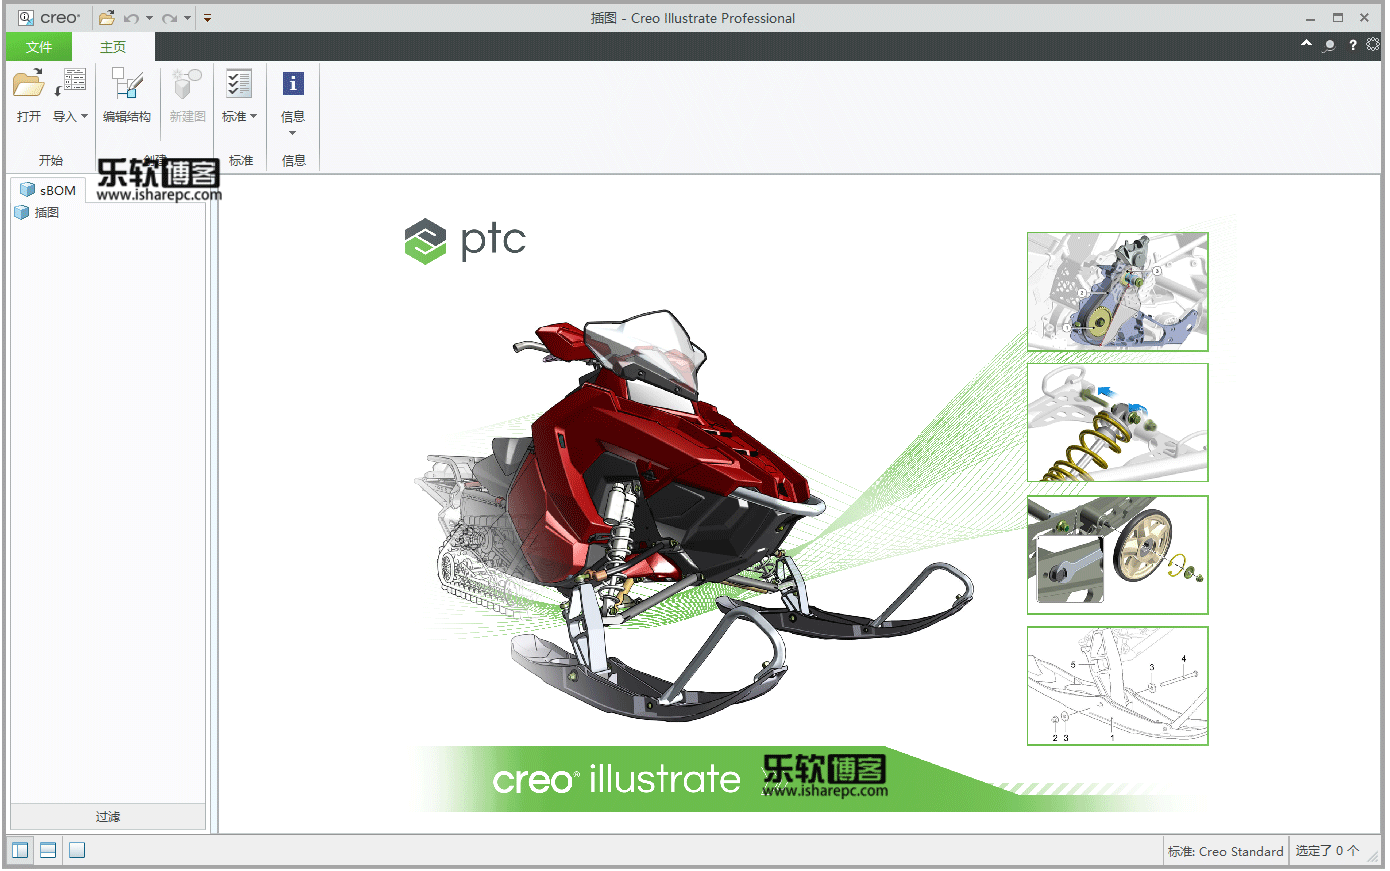 PTC Creo Illustrate 6.0破解版